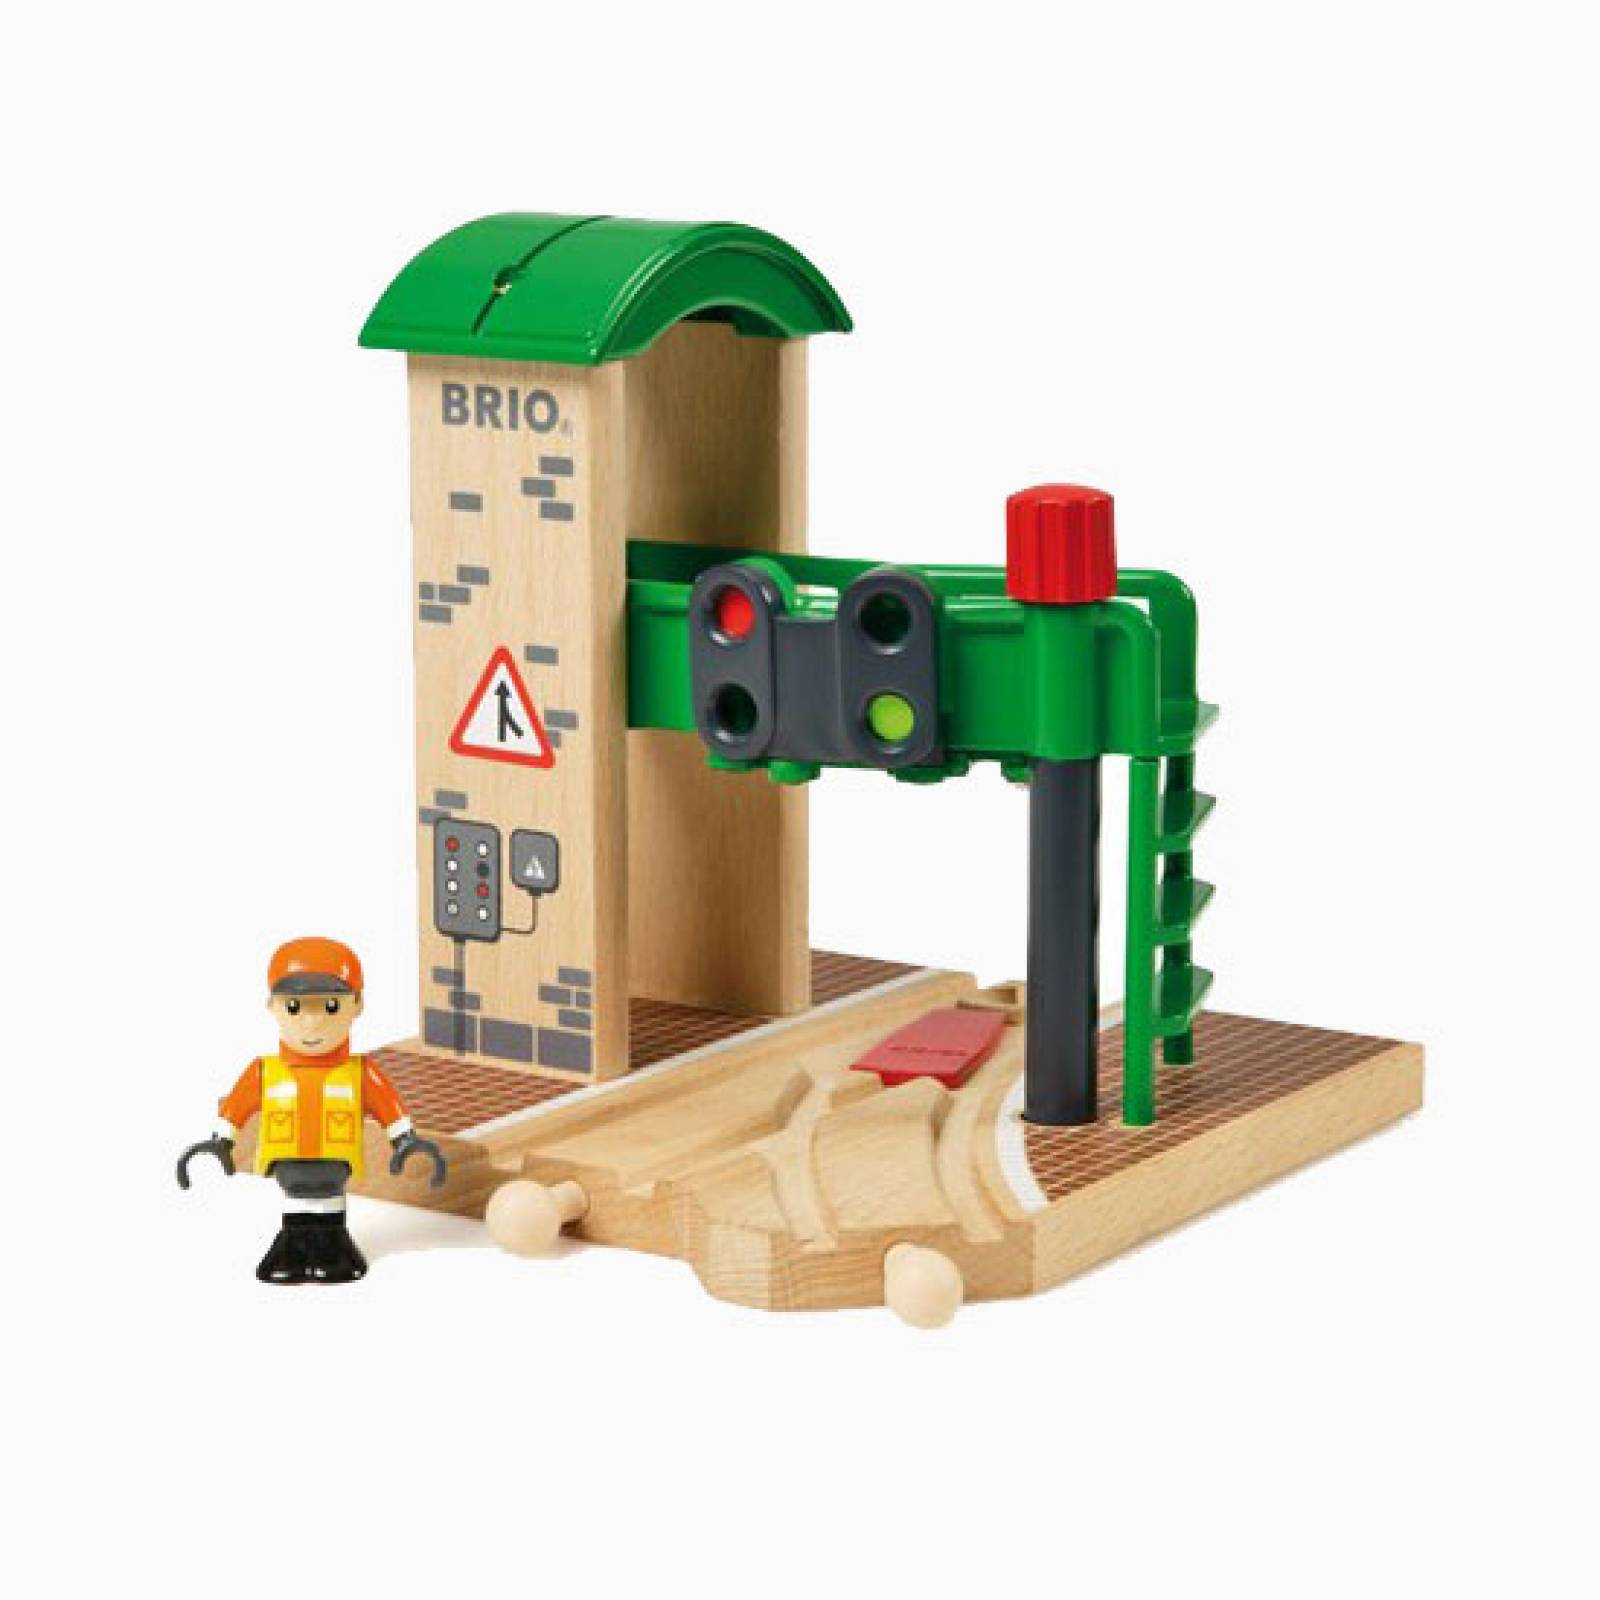 Signal Station BRIO Wooden Railway Age 3+ thumbnails